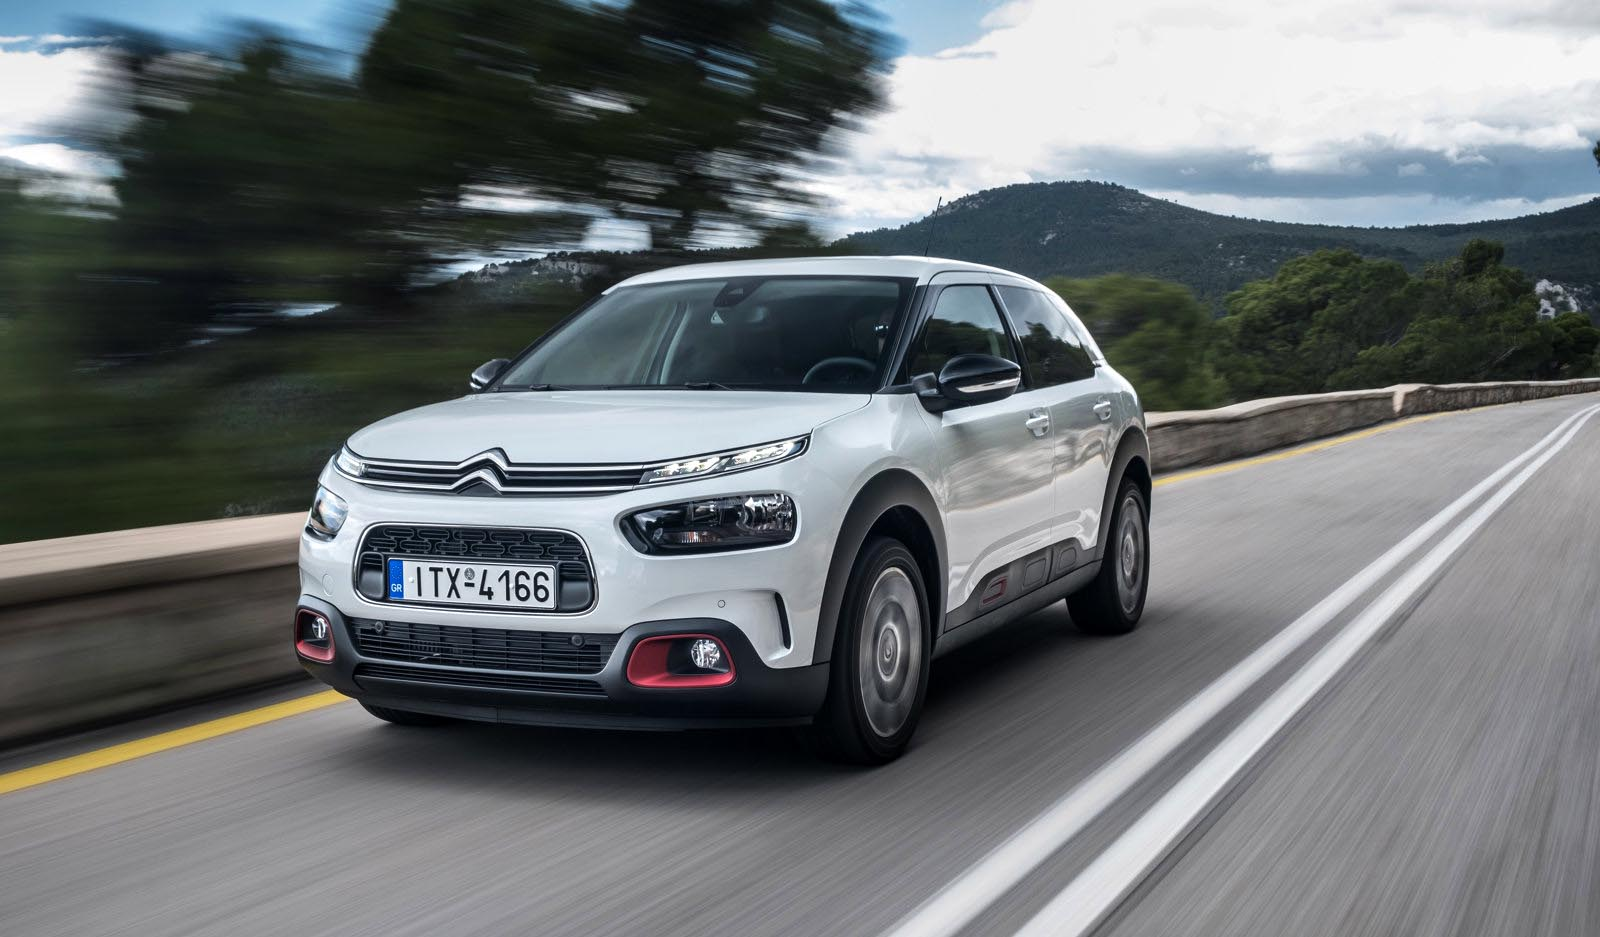 citroen c4 cactus 1 6 bluehdi 100 ps test drive. Black Bedroom Furniture Sets. Home Design Ideas